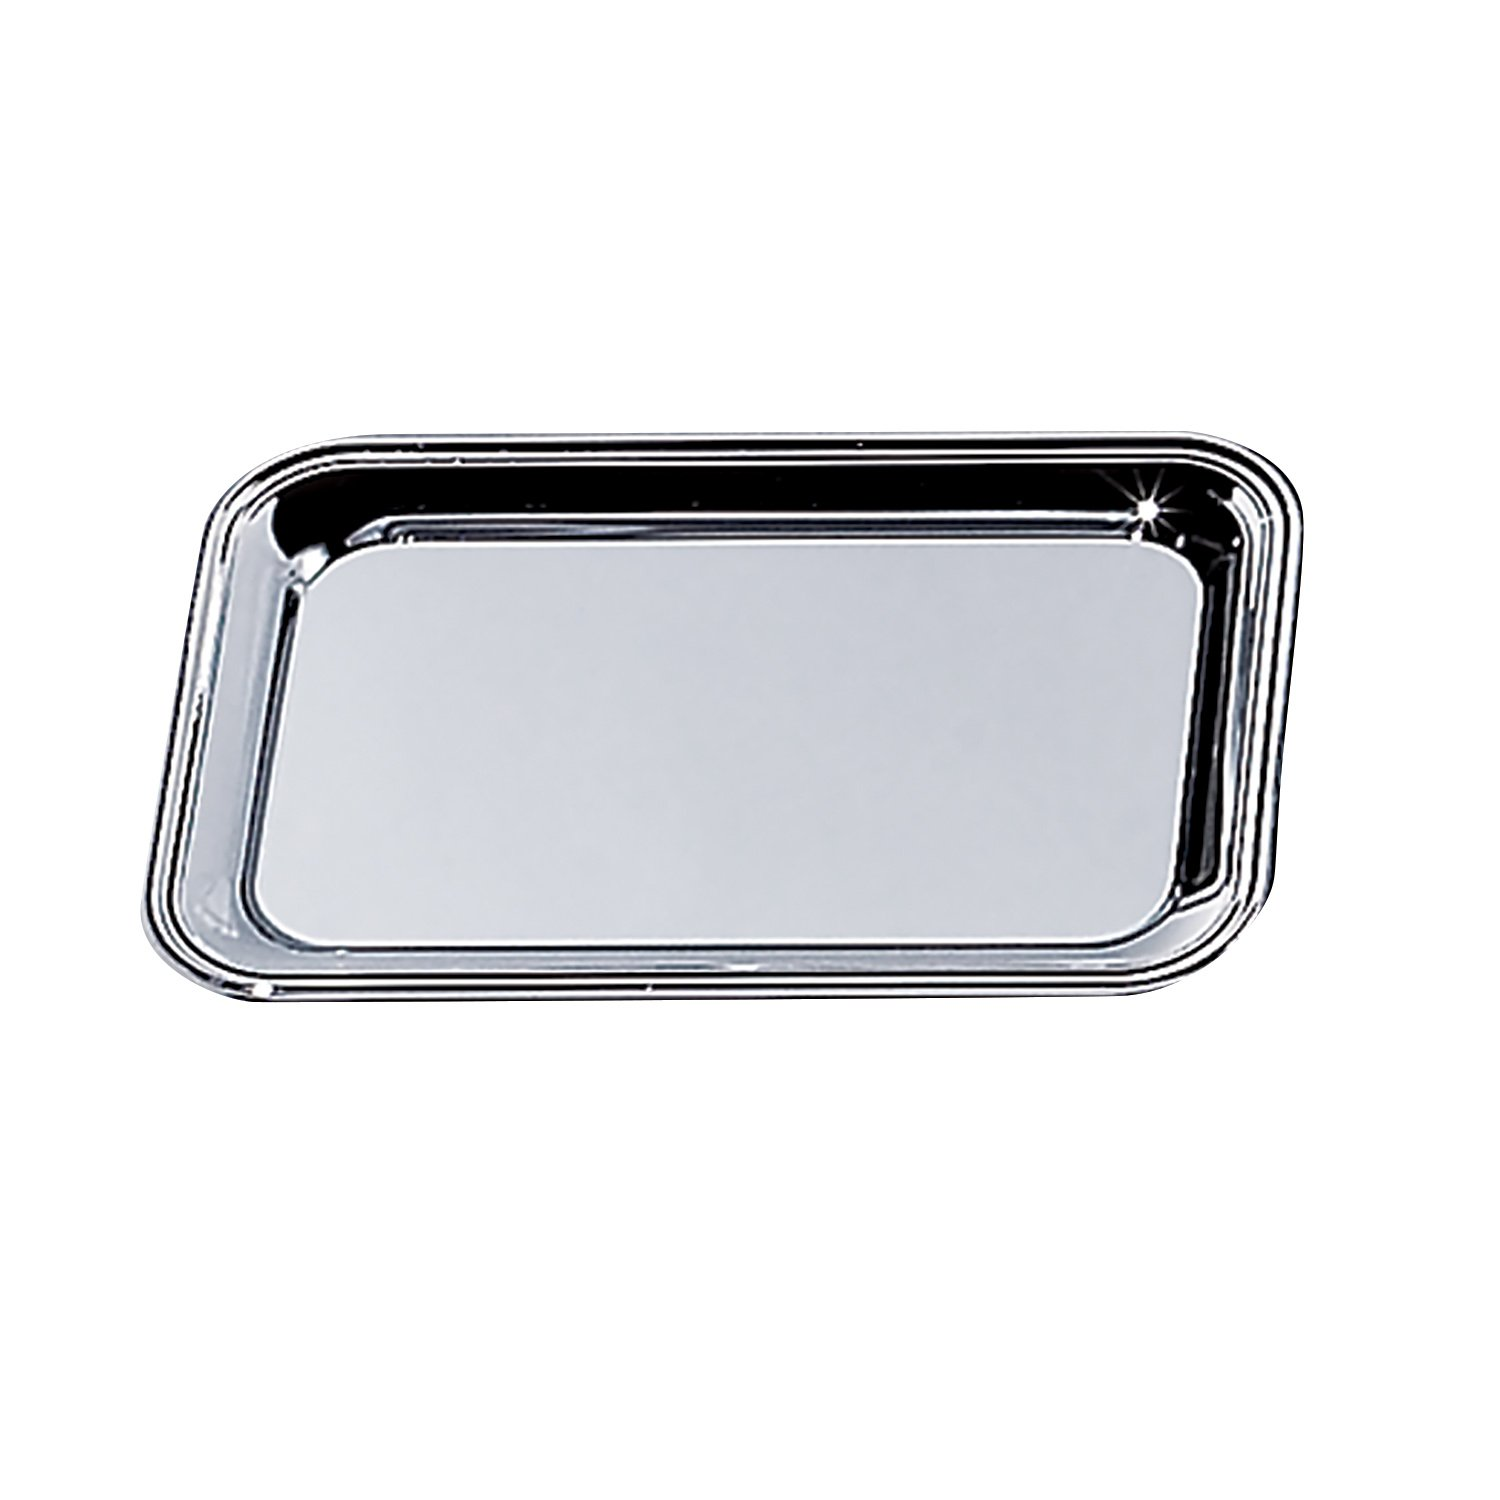 Elegance Silver Tray ONLY $6.8...